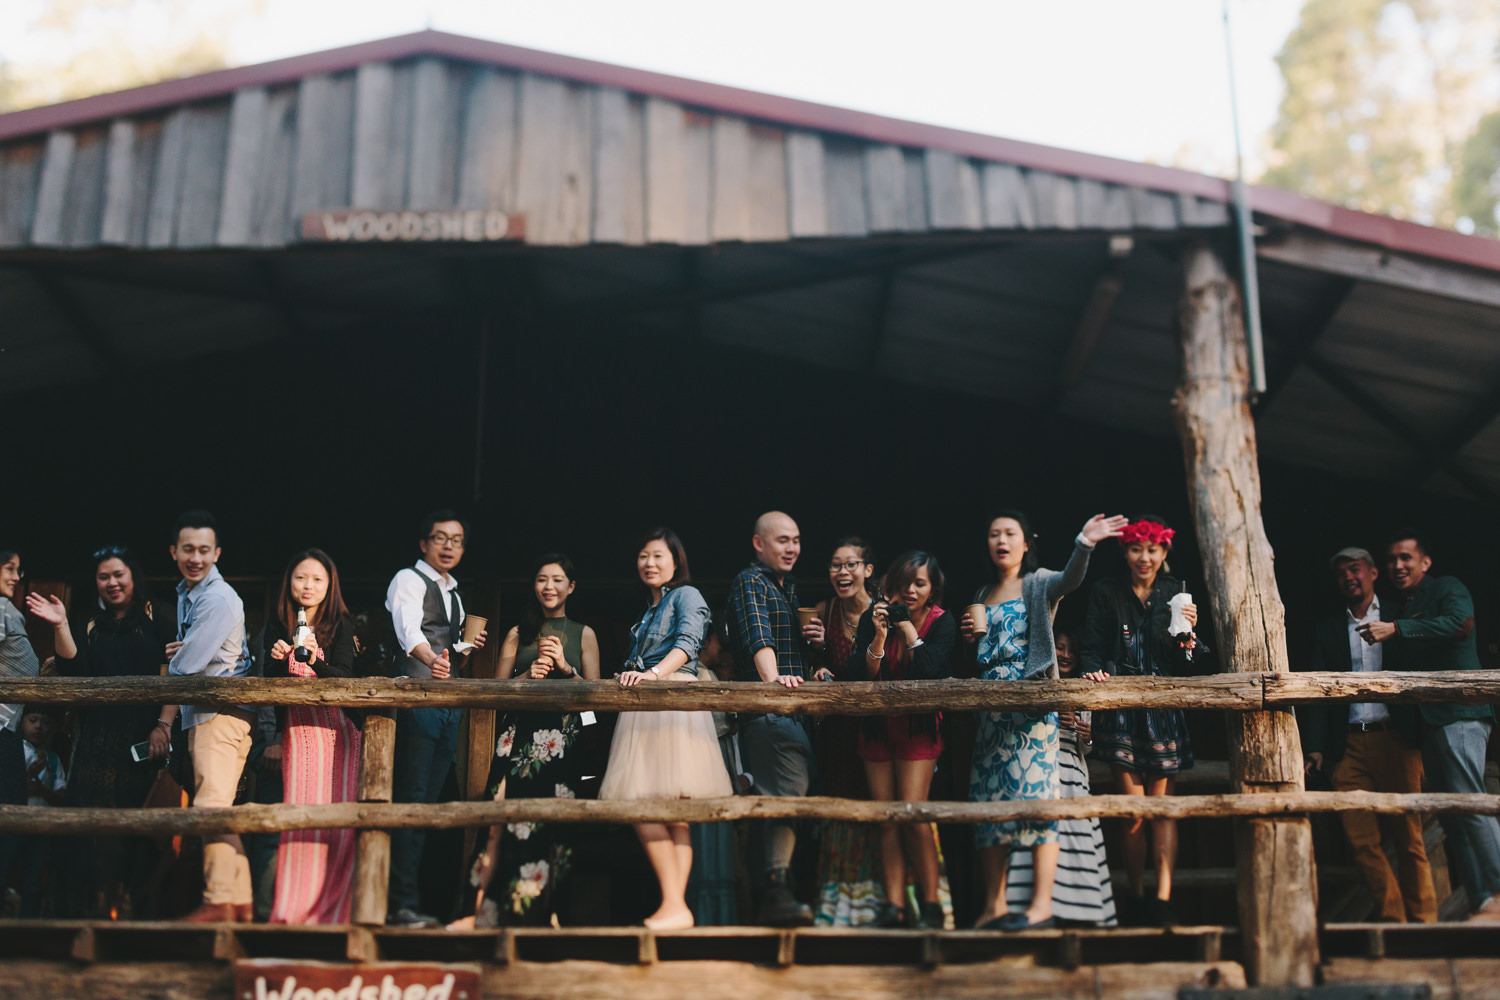 153-Barn_Wedding_Australia_Sam_Ting.jpg